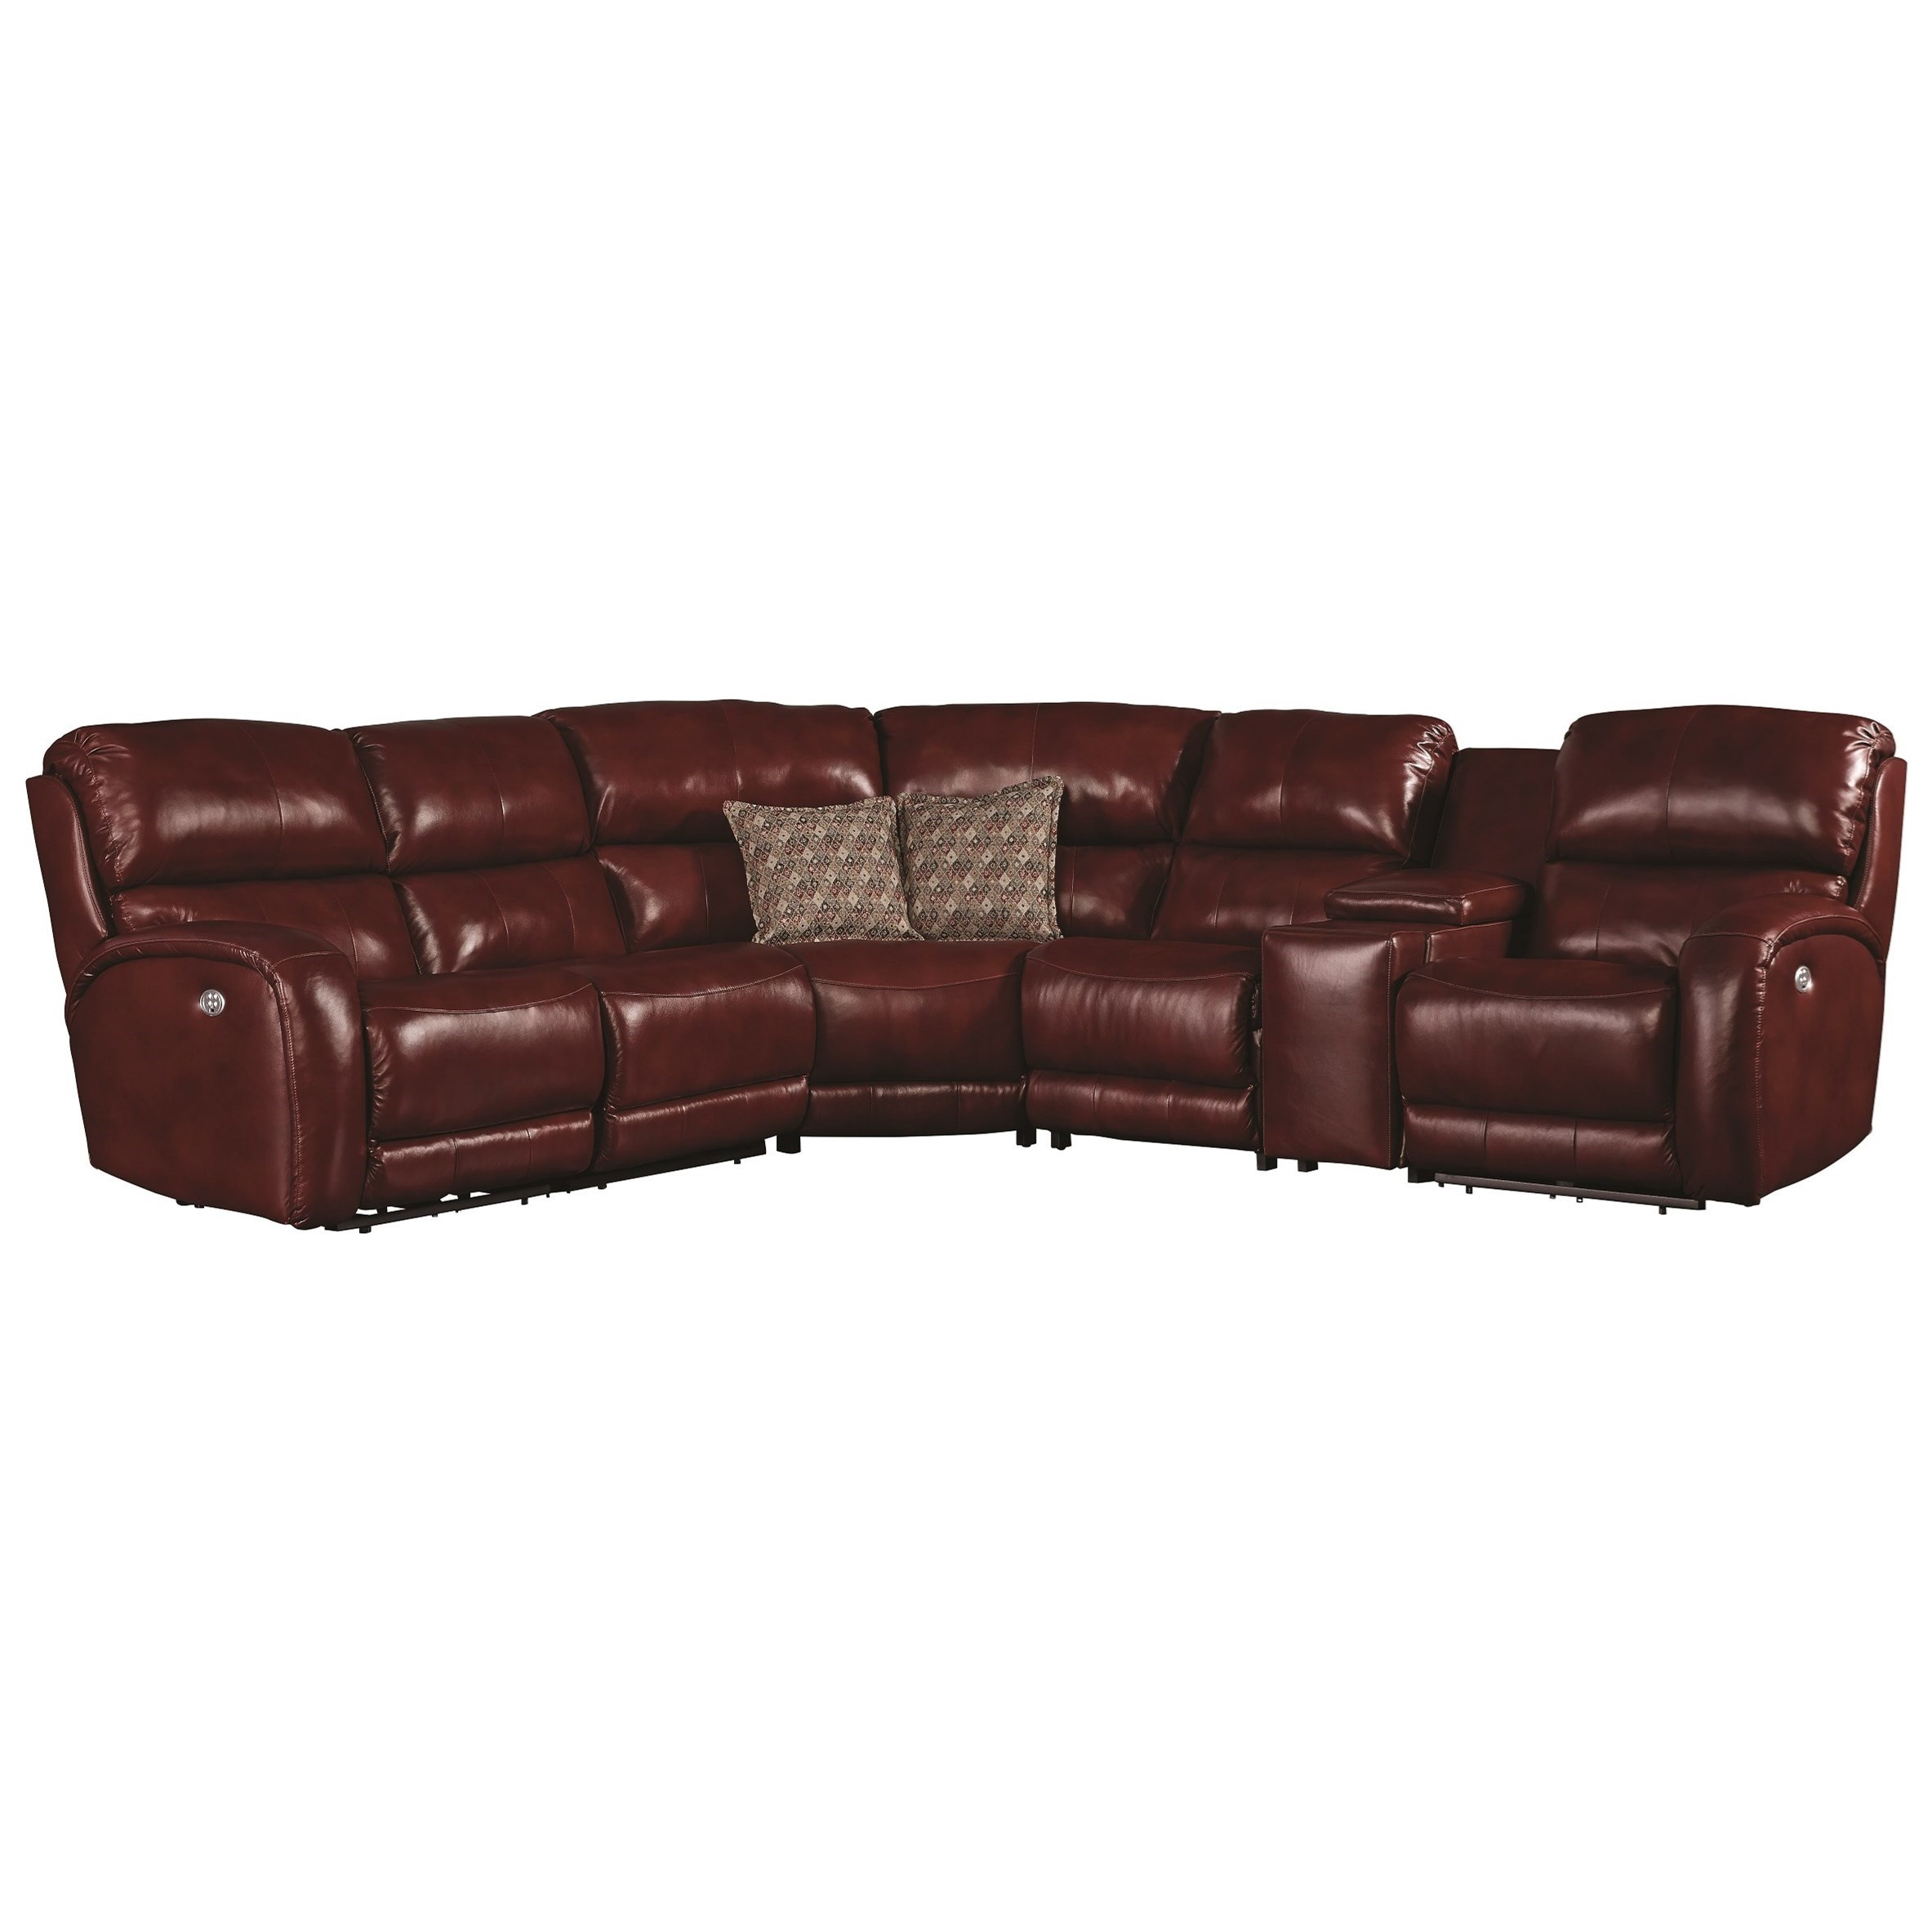 Fandango Power Reclining Sofa by Southern Motion at Sparks HomeStore